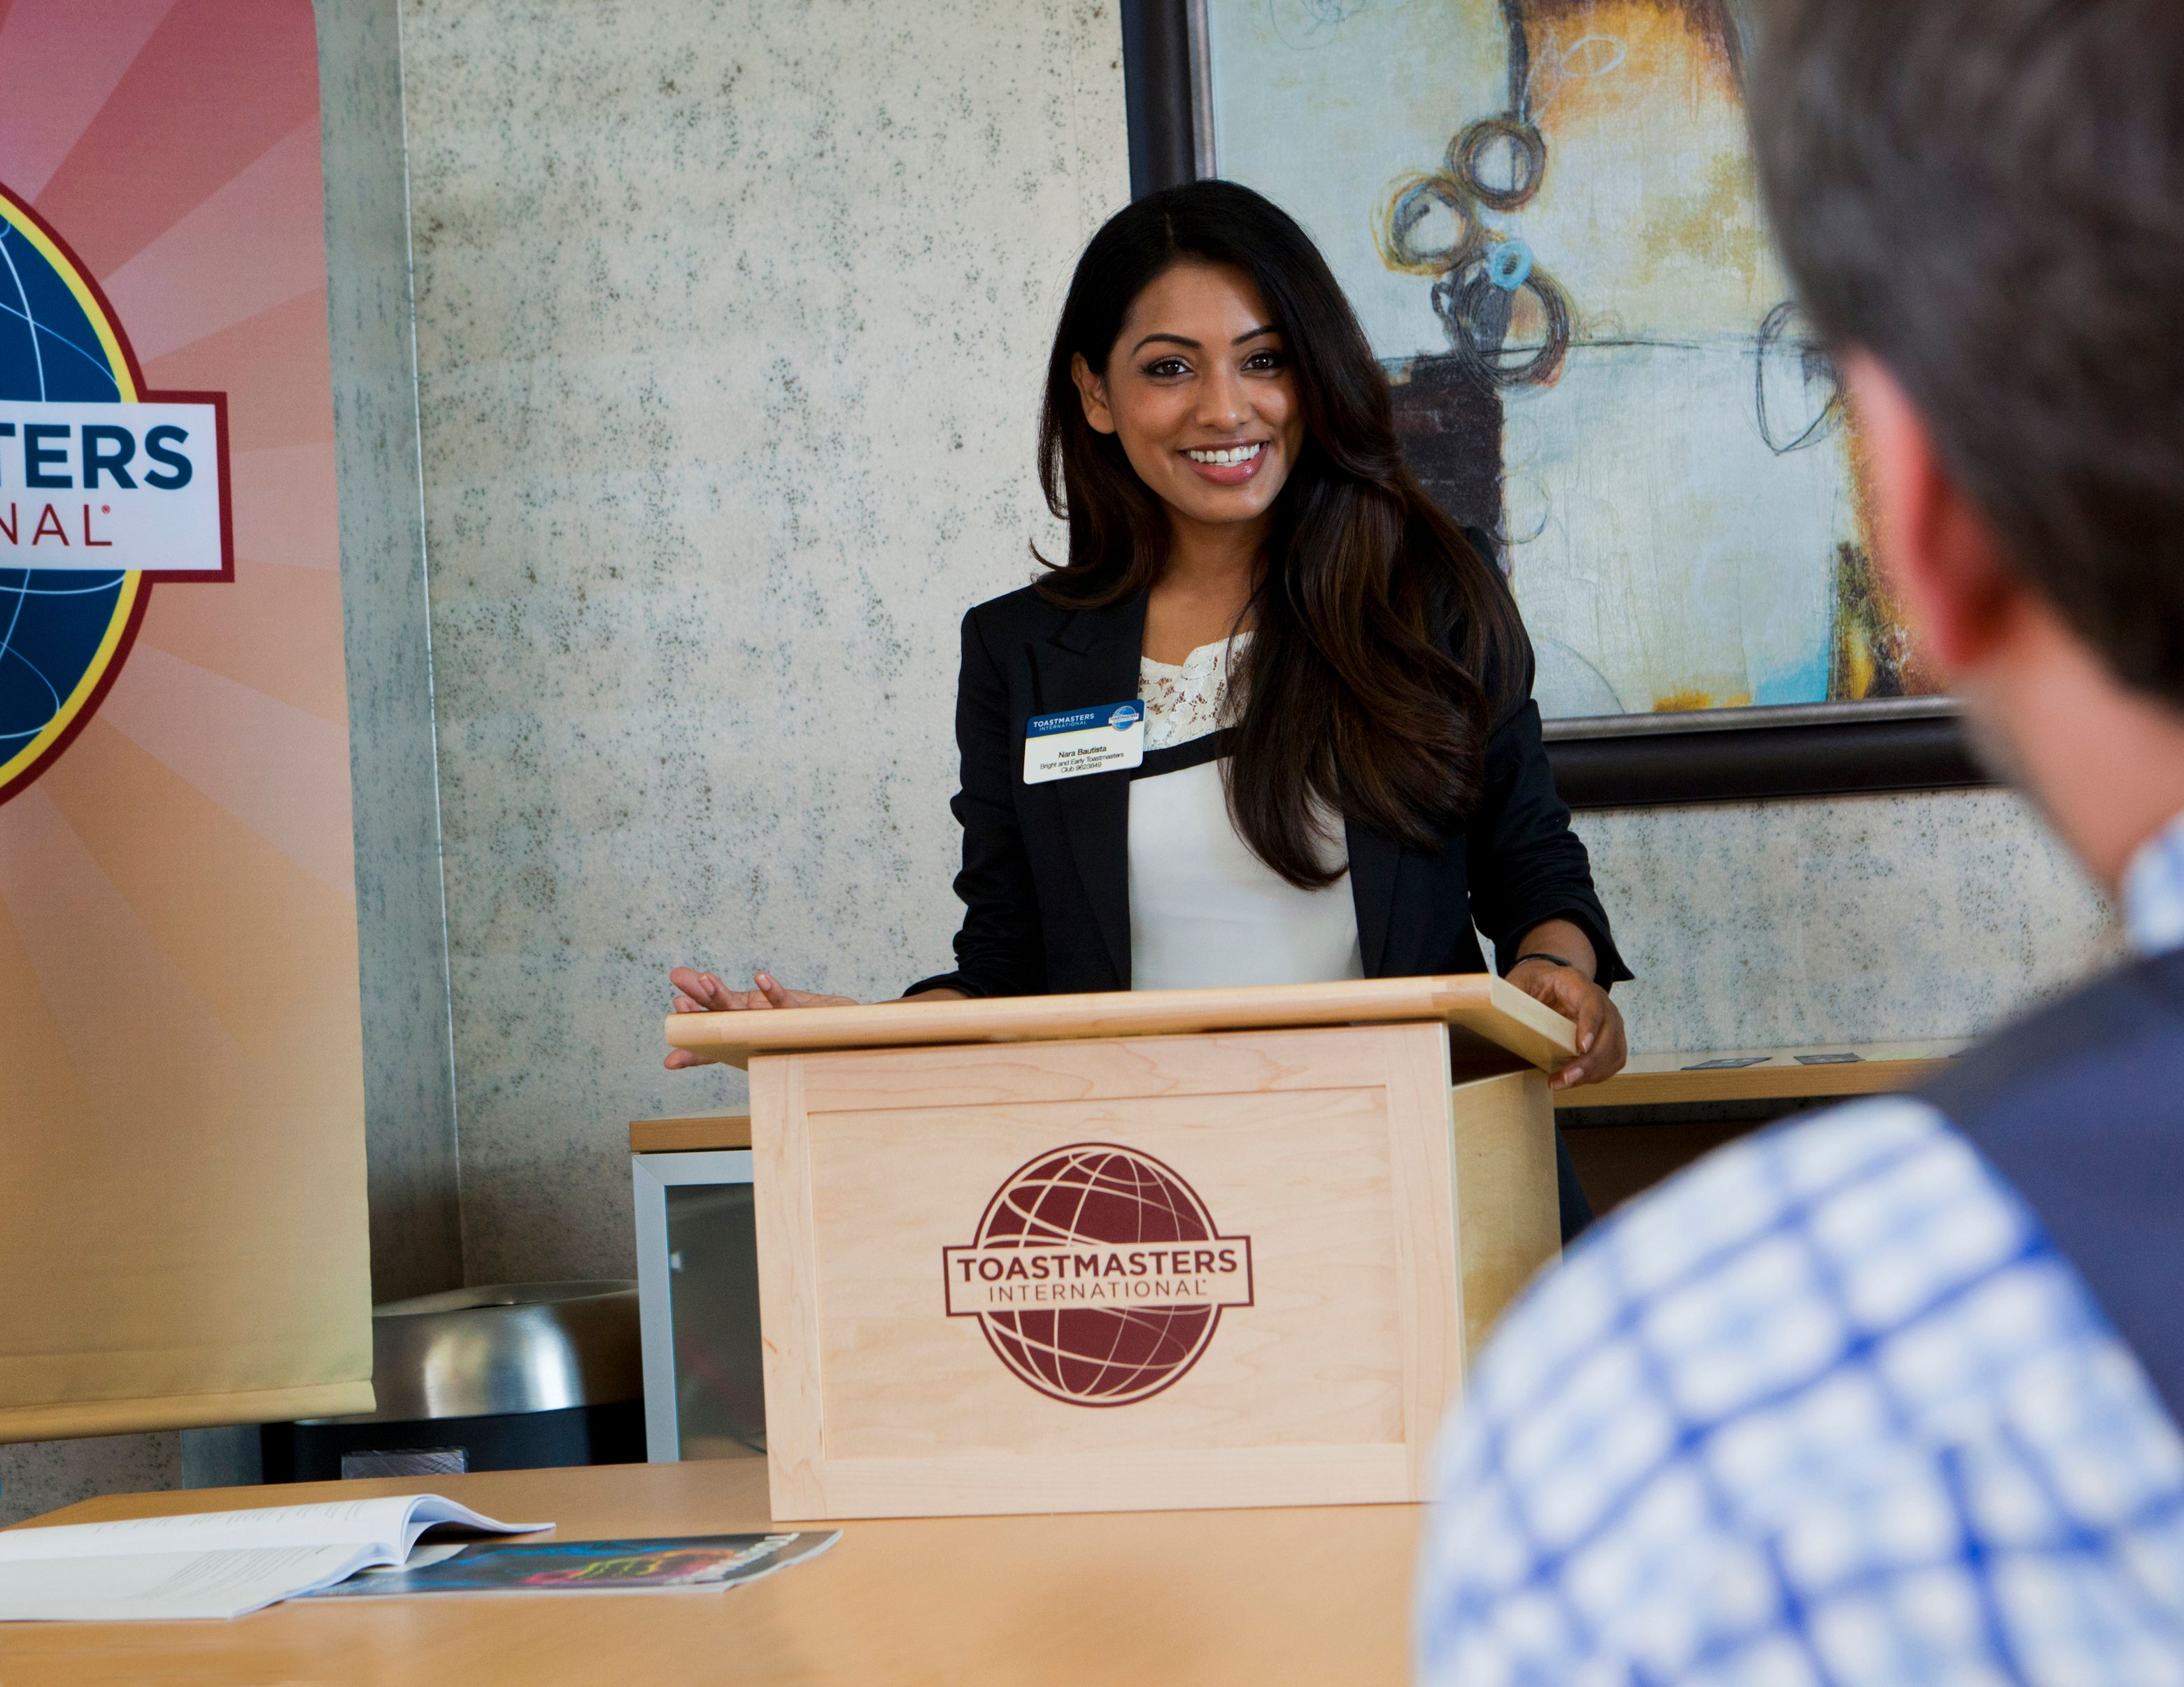 District 13 Toastmasters